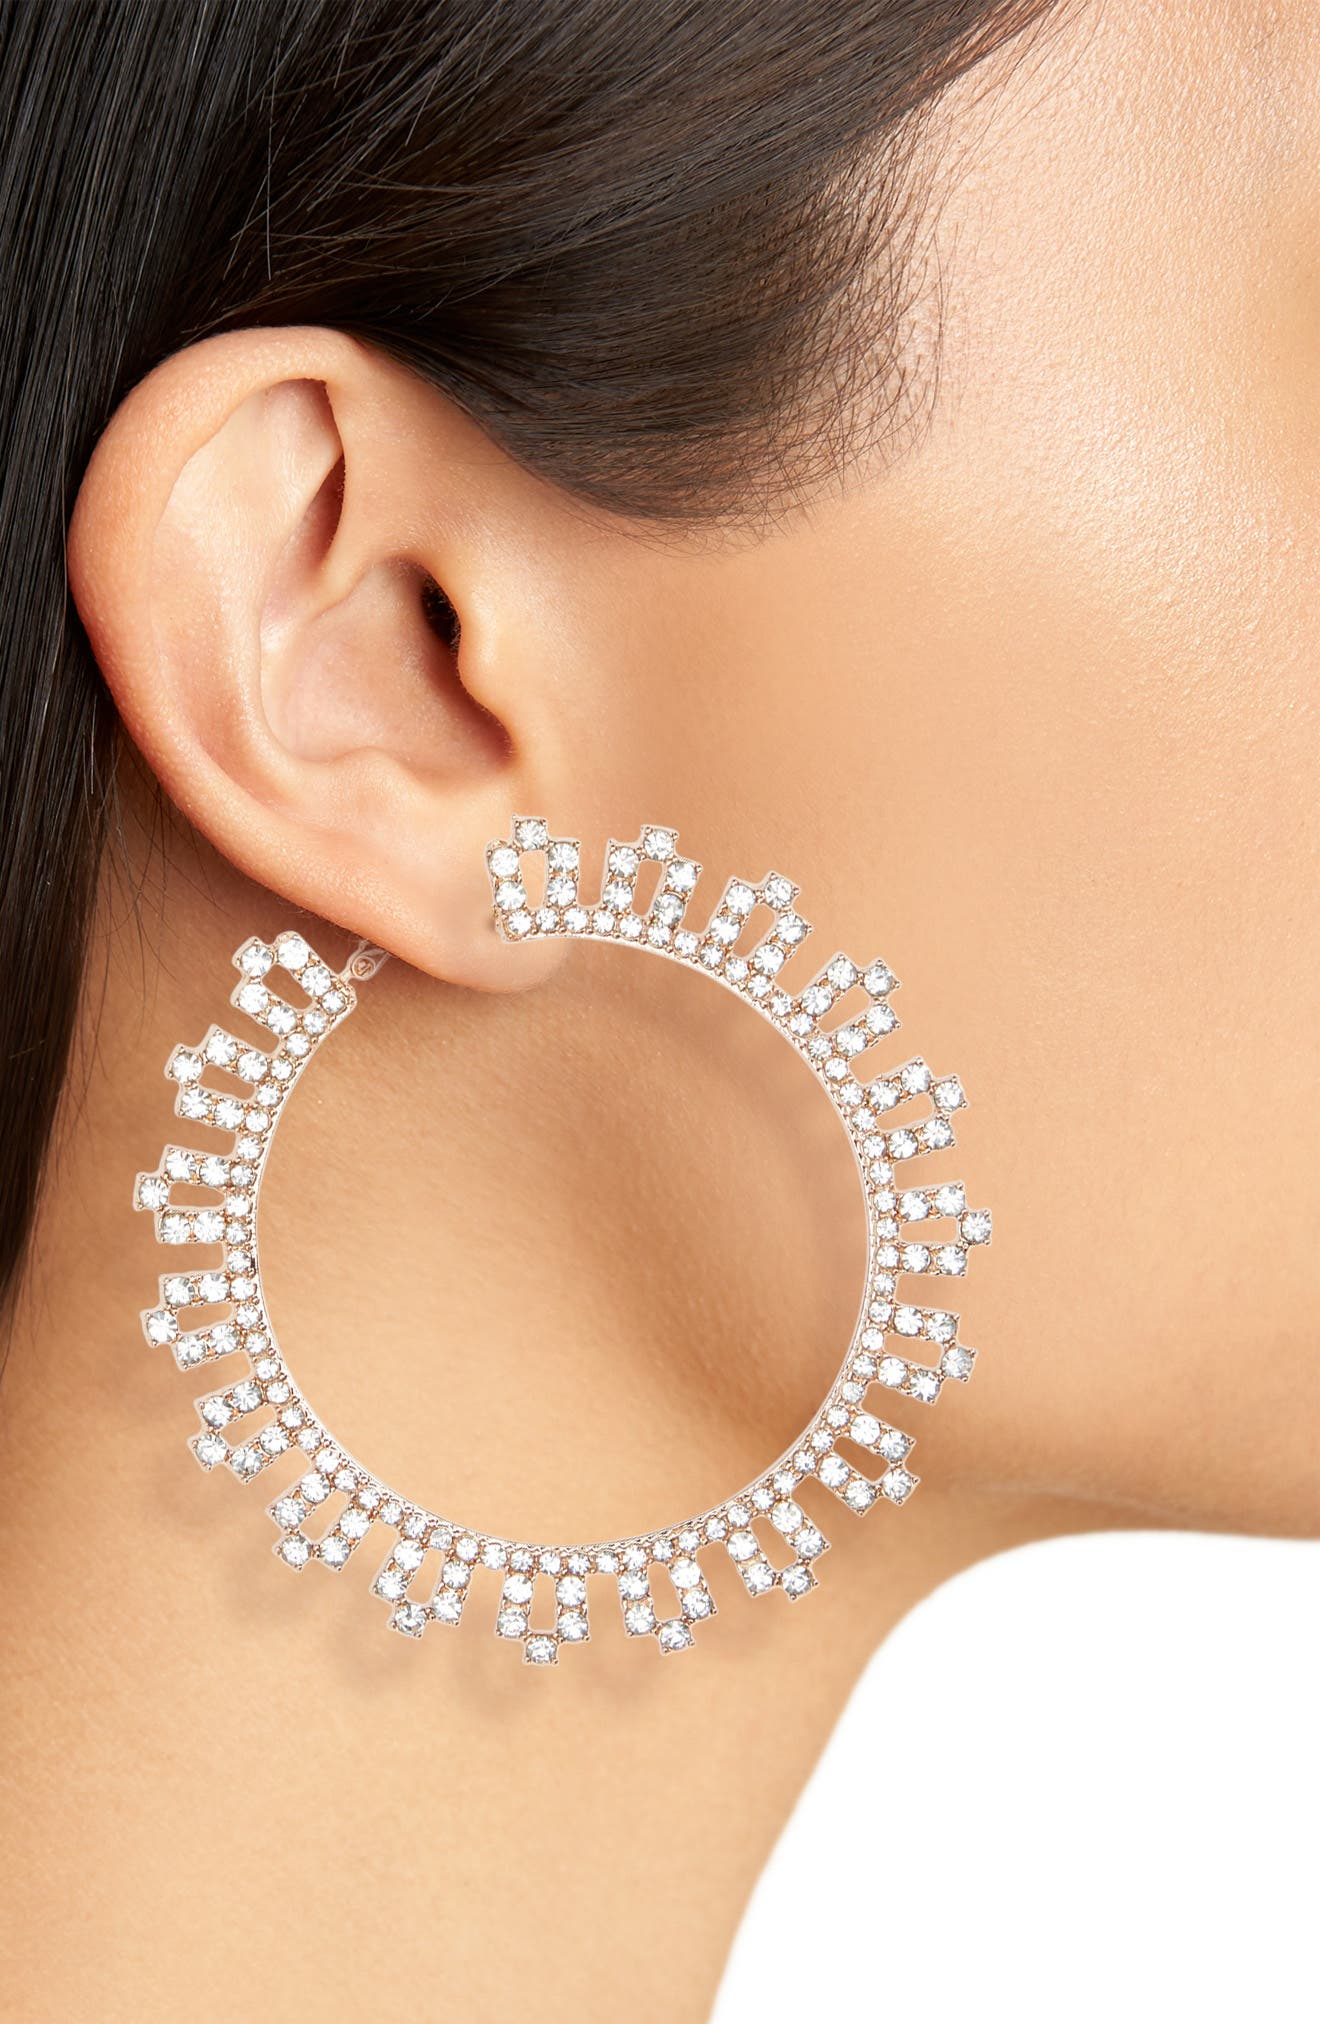 Lace Crystal Statement Earrings,                             Alternate thumbnail 2, color,                             Crystal/ Rose Gold